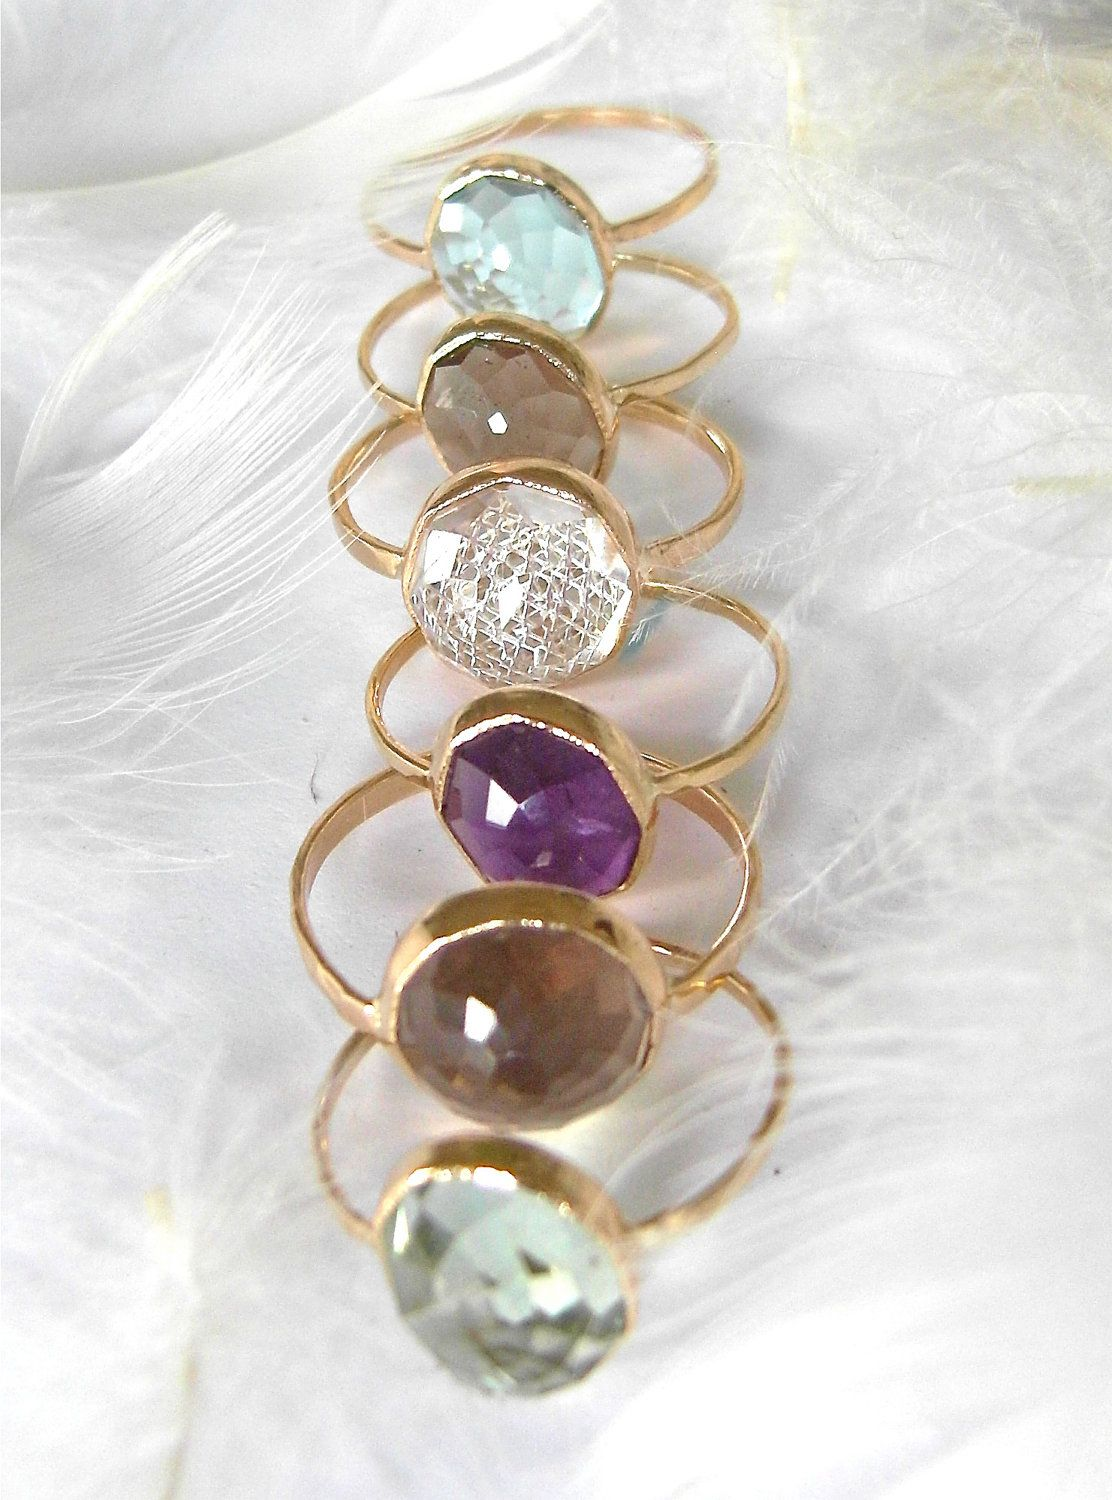 band valentinacollection rings introducing the paolocostagli gemstone eternity pin by in bands